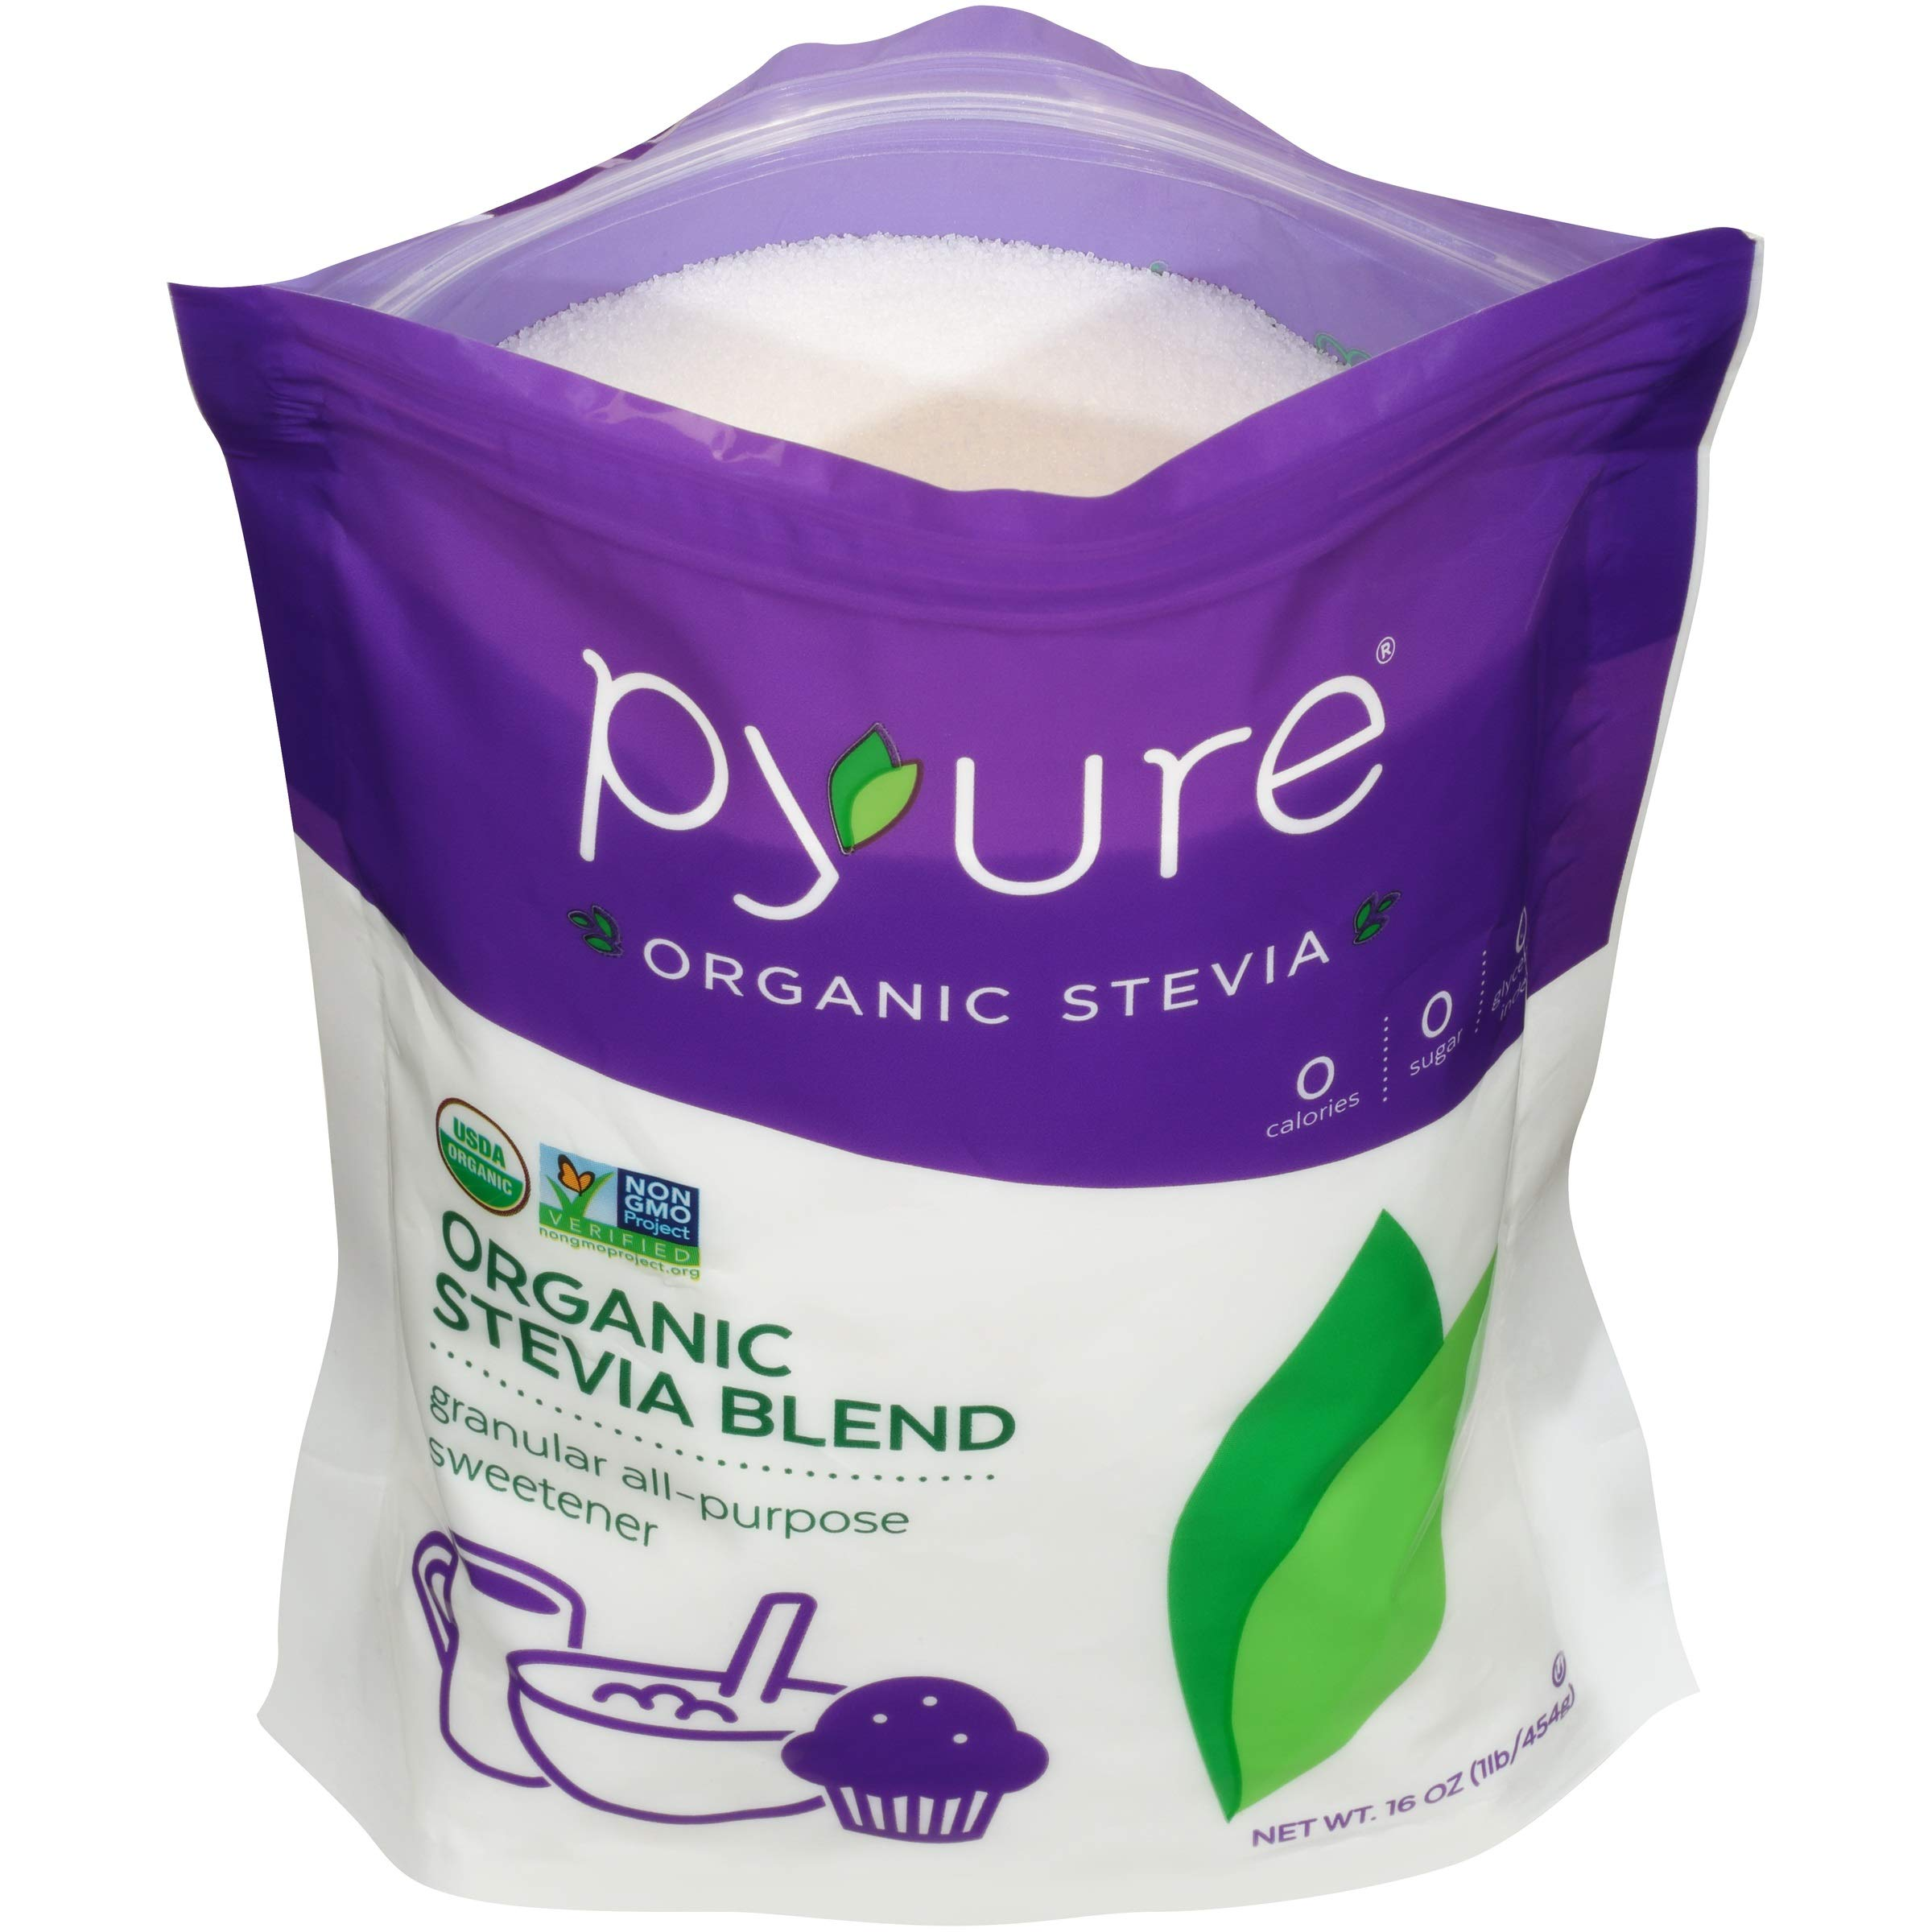 Pyure Organic All-Purpose Blend Stevia Sweetener, 1 lb (16 oz) by Pyure (Image #6)